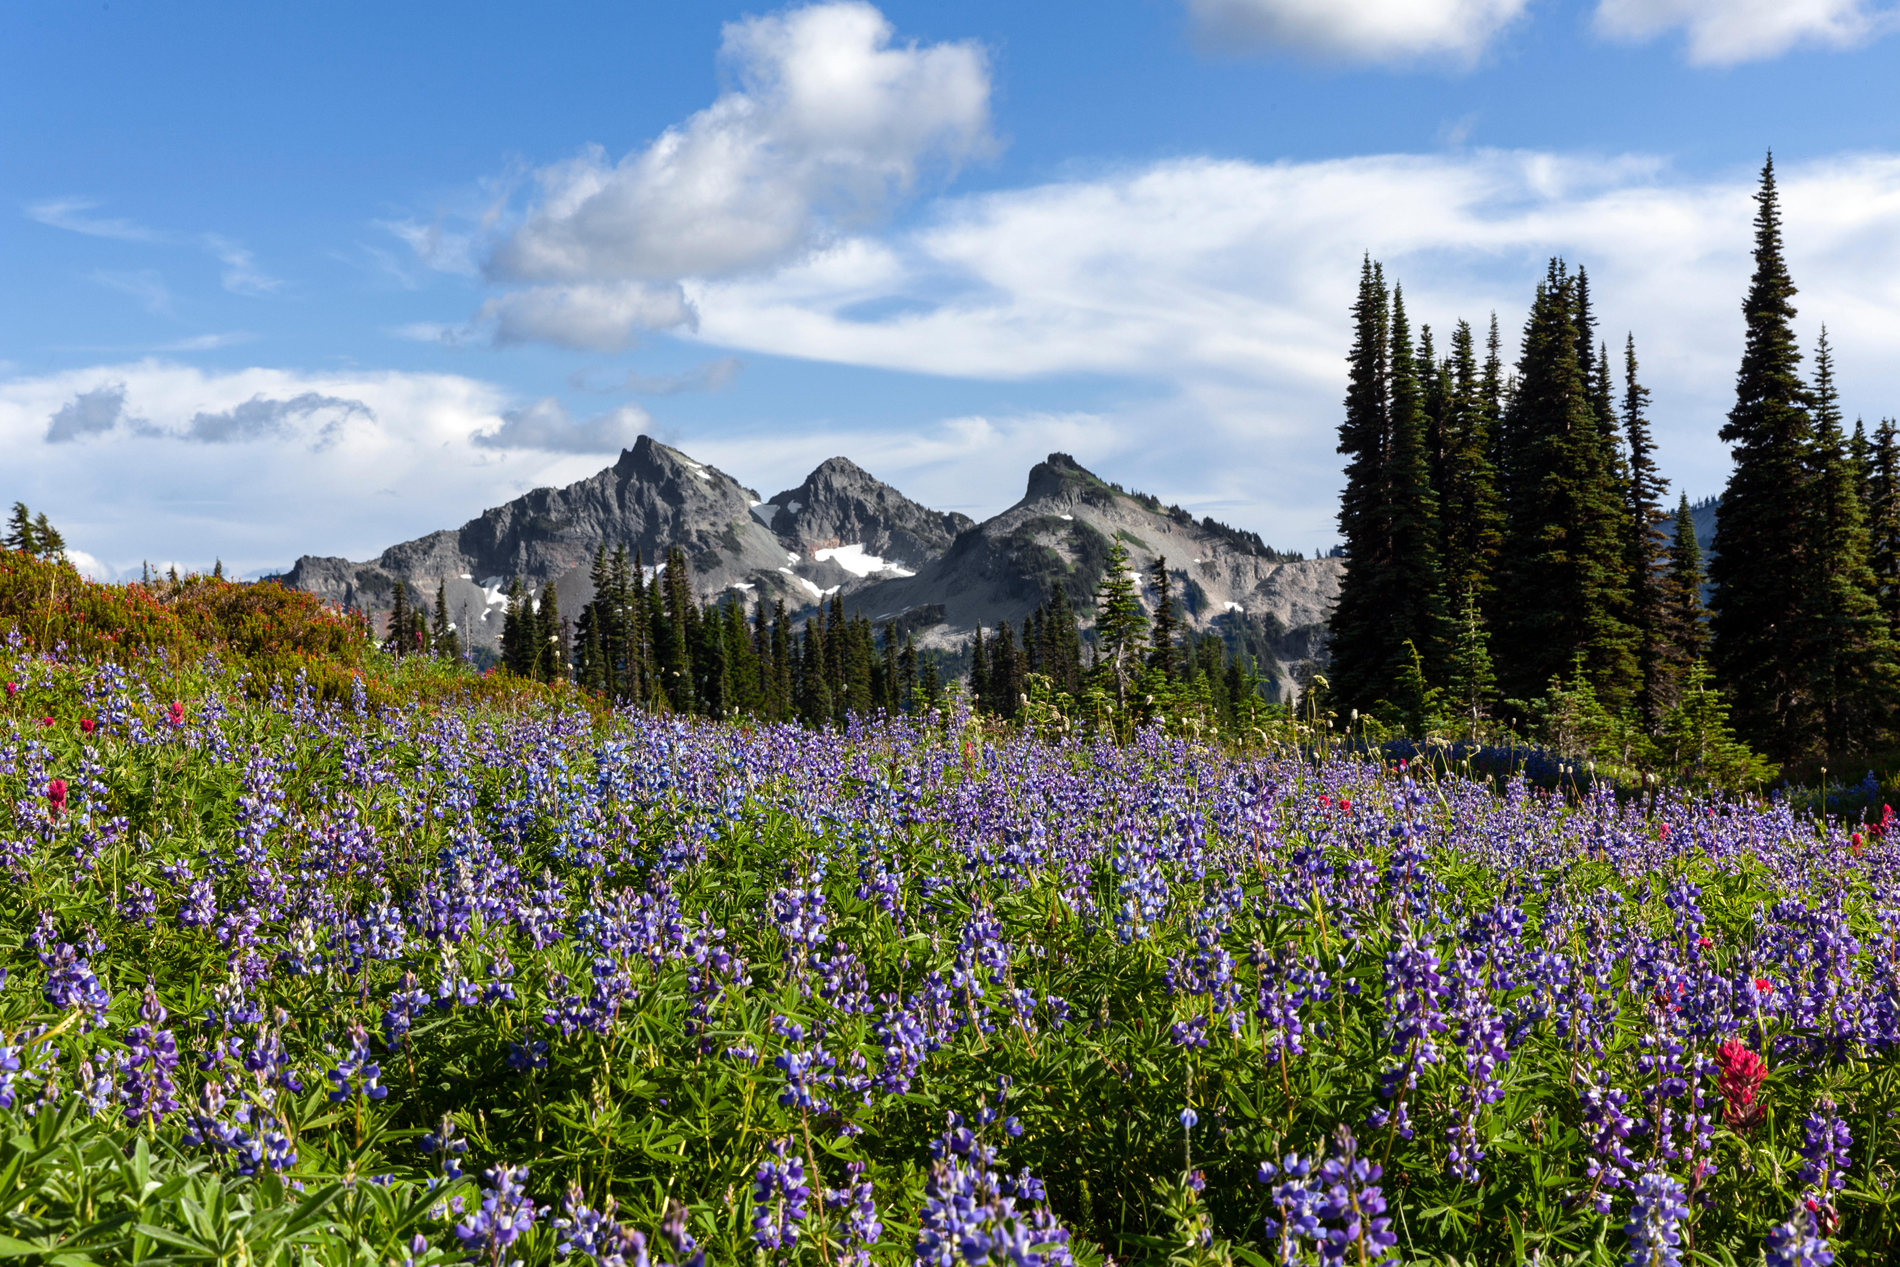 The Tatoosh Range viewed from Mazama Ridge in Mount Rainer National Park (Alamy/PA)